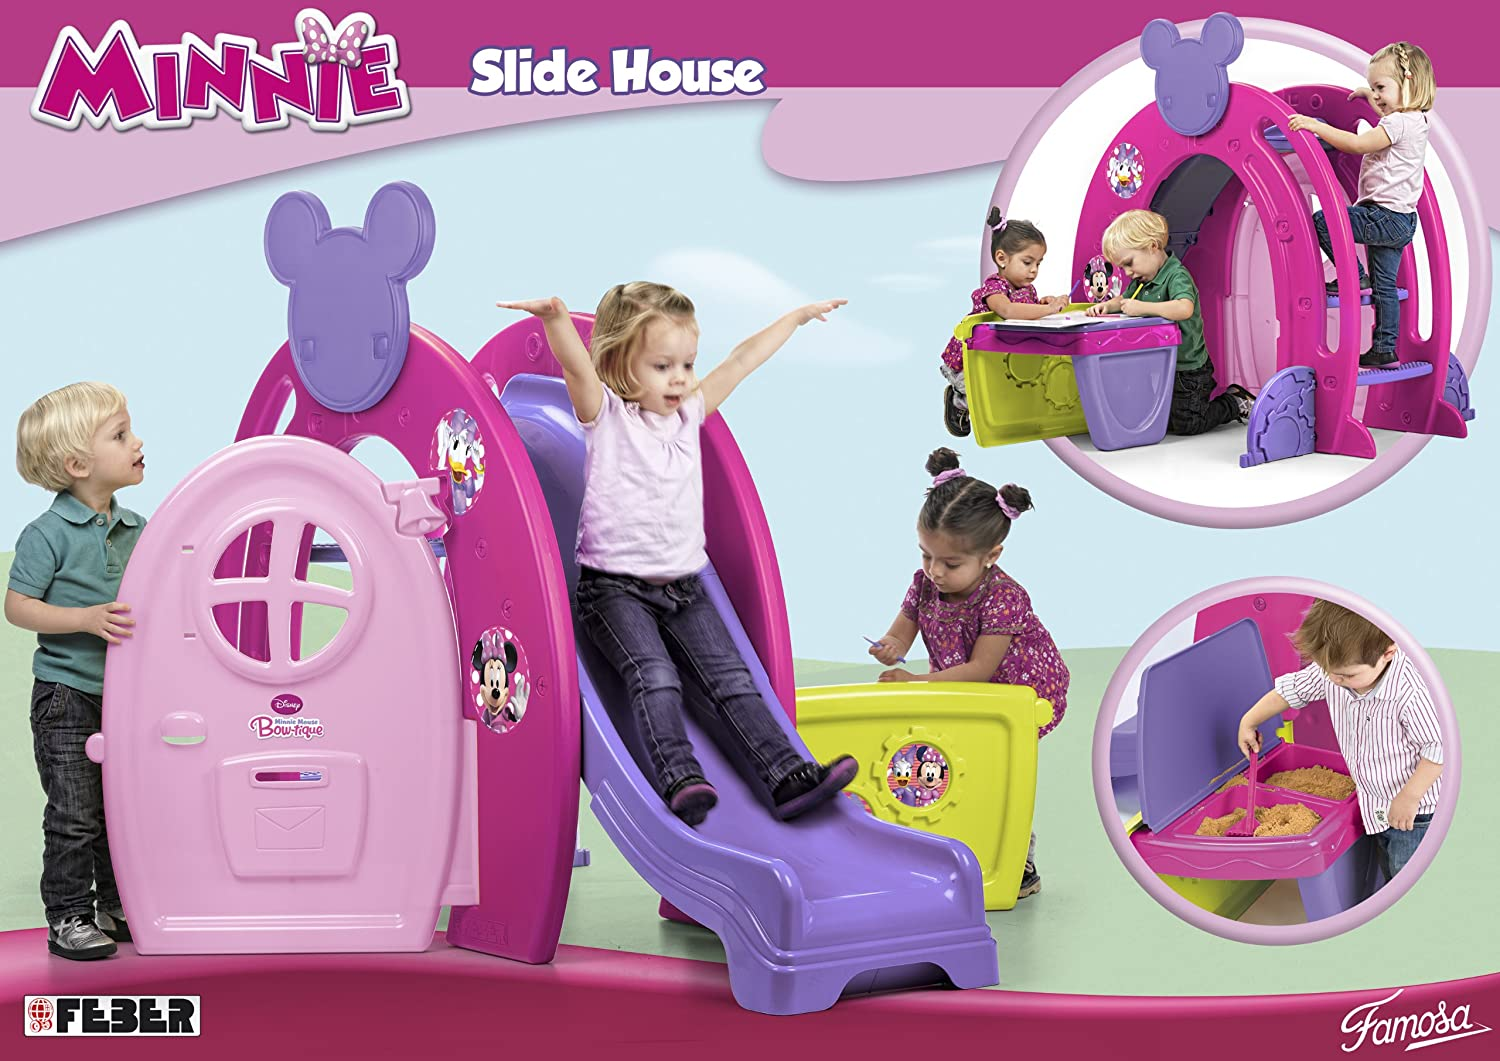 Minnie Bowtique Slide House: Amazon.co.uk: Toys & Games